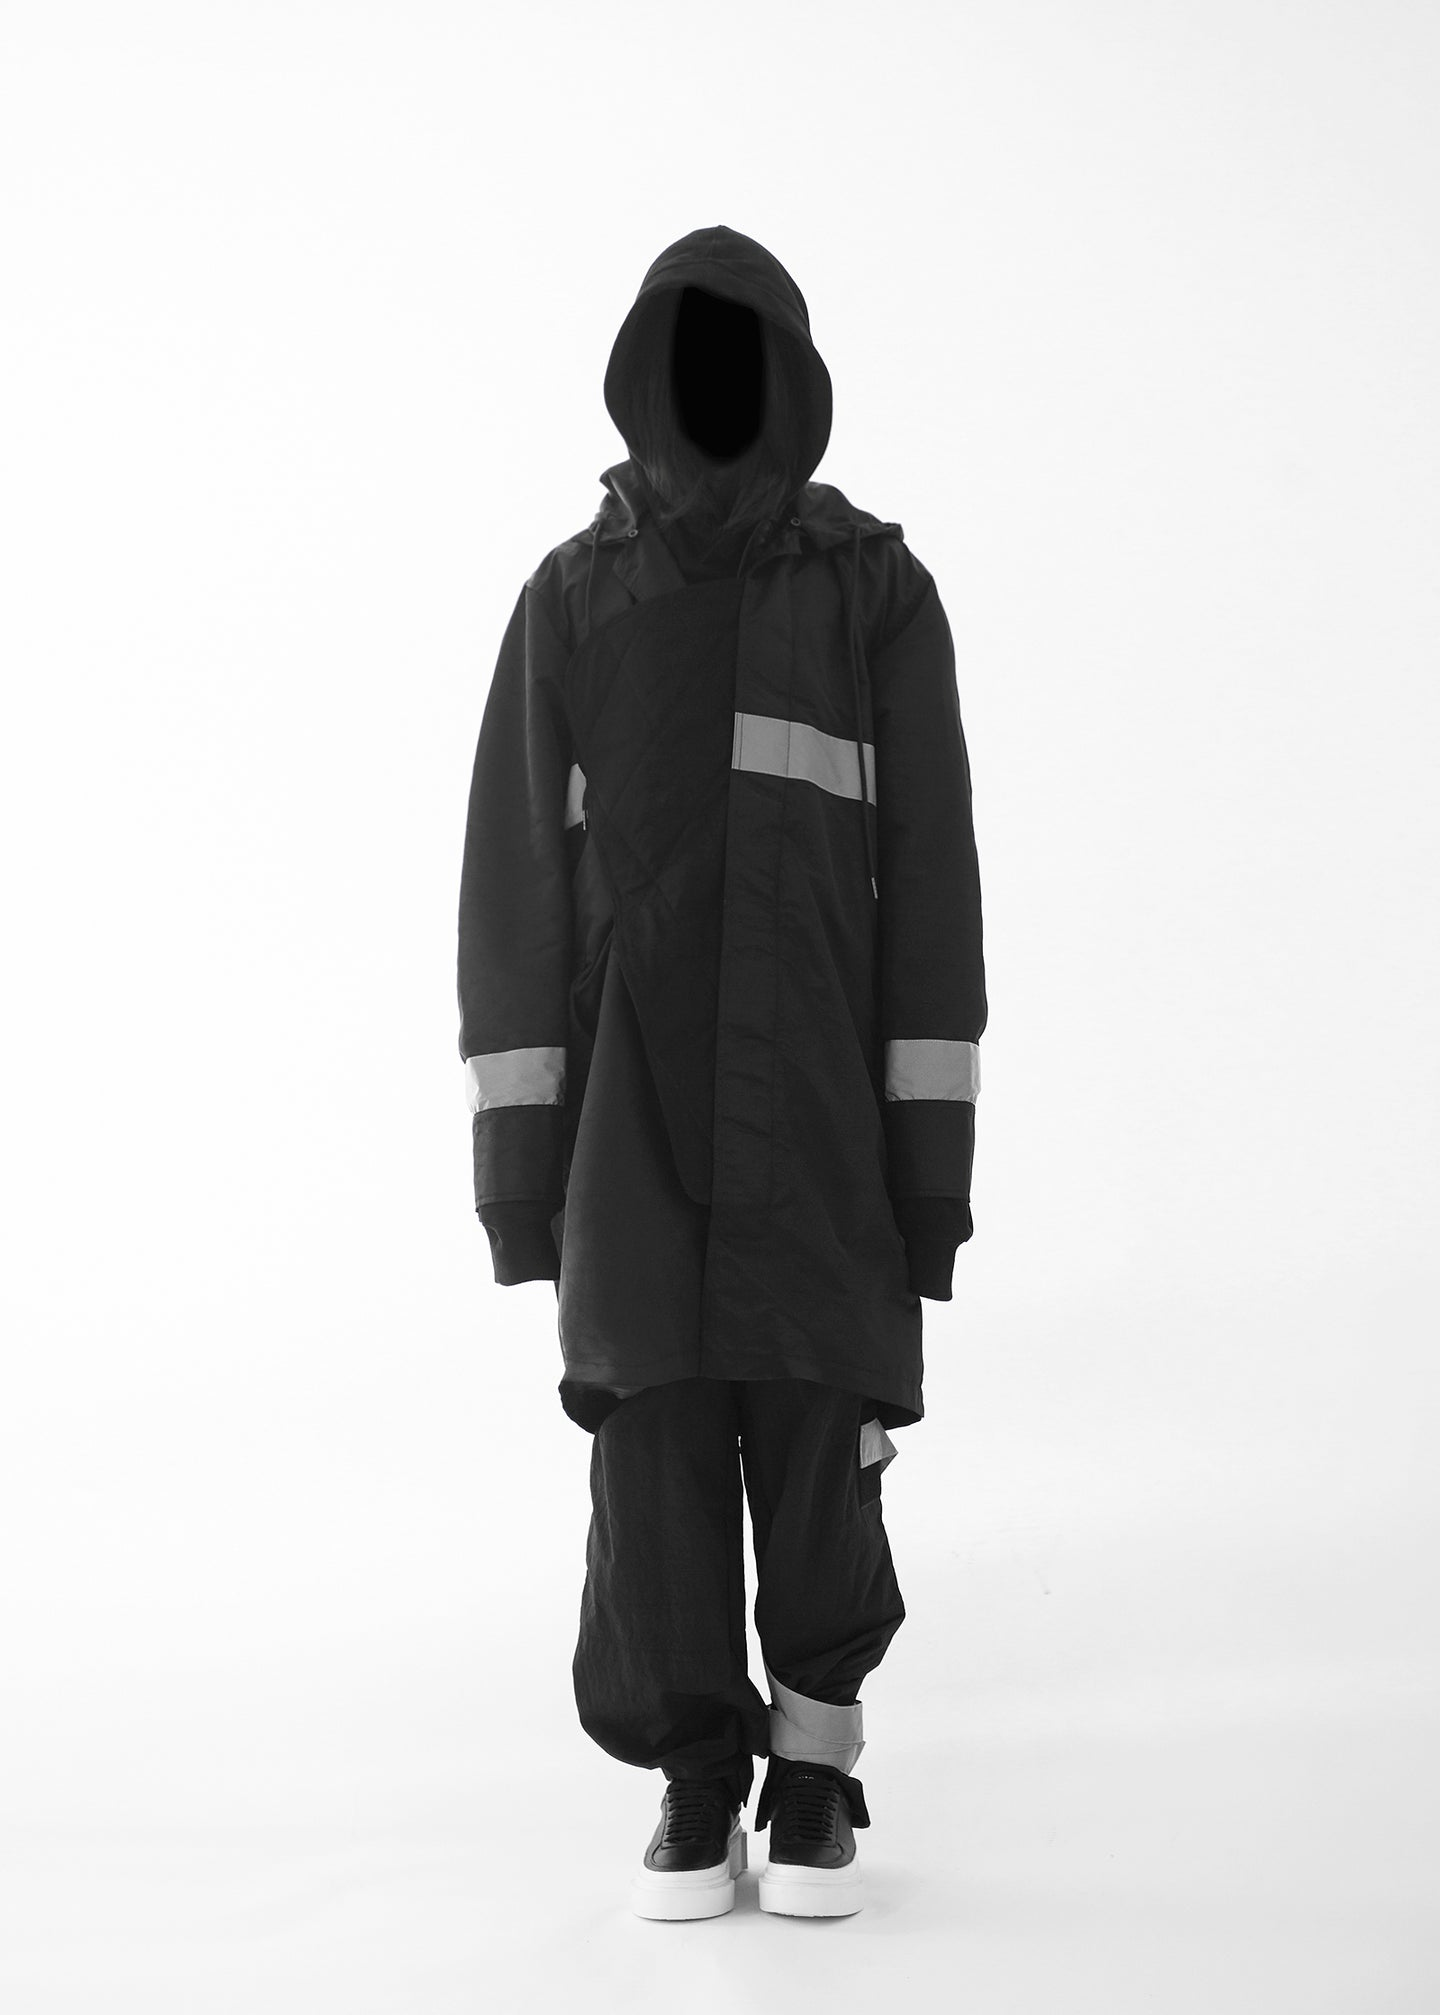 CGNY 2019 S/S Asymmetrical Reflective Hooded Jacket - CGNY